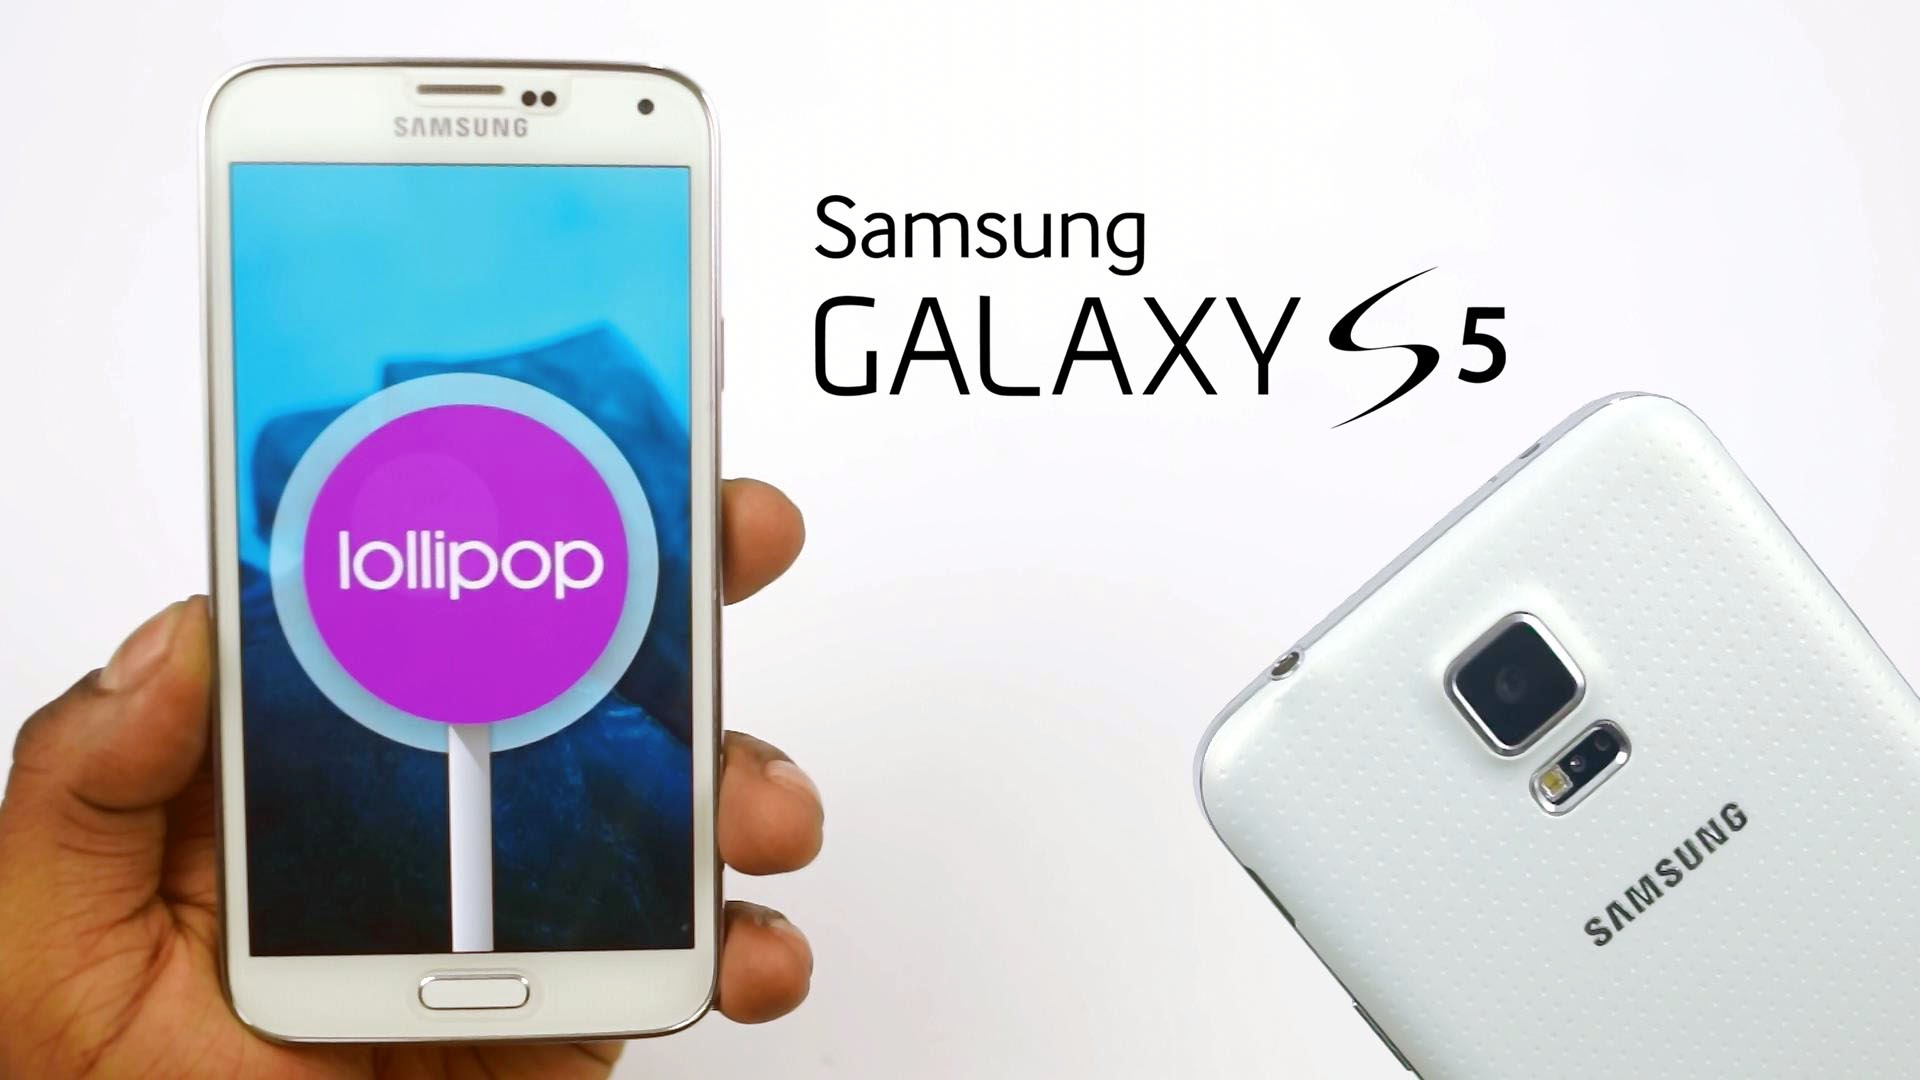 galaxy-s5-lollipop-android-update-rom-instead